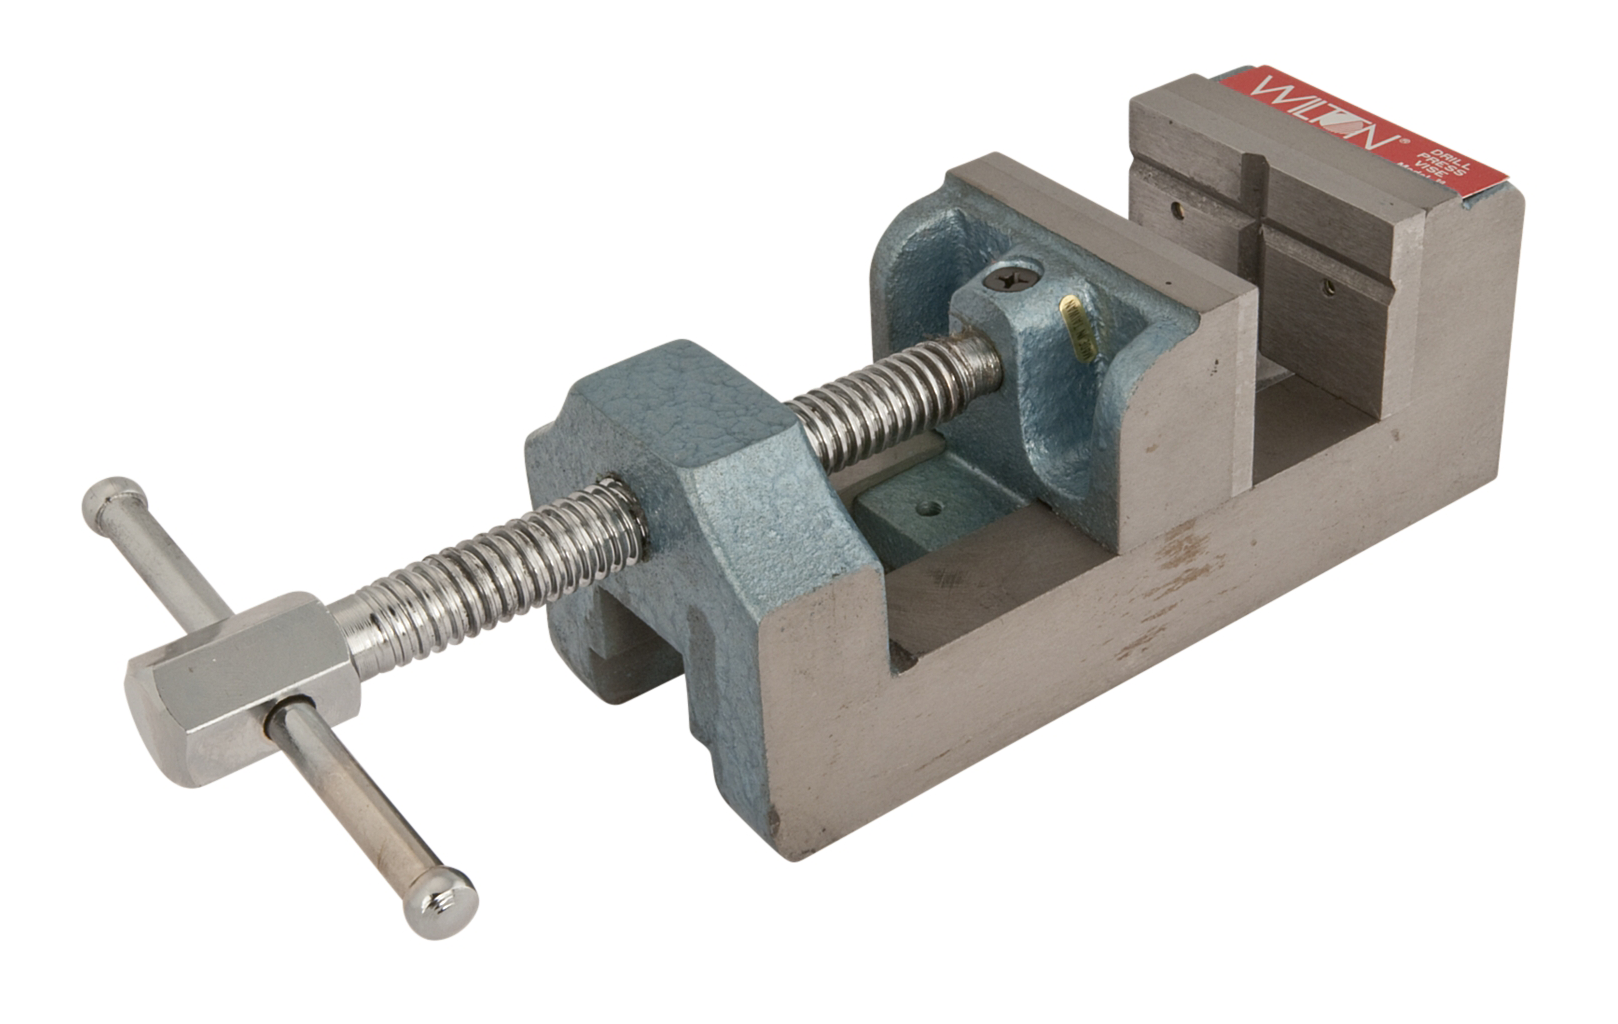 Wilton Drill Press Vise Continuous Nut, 3' Jaw